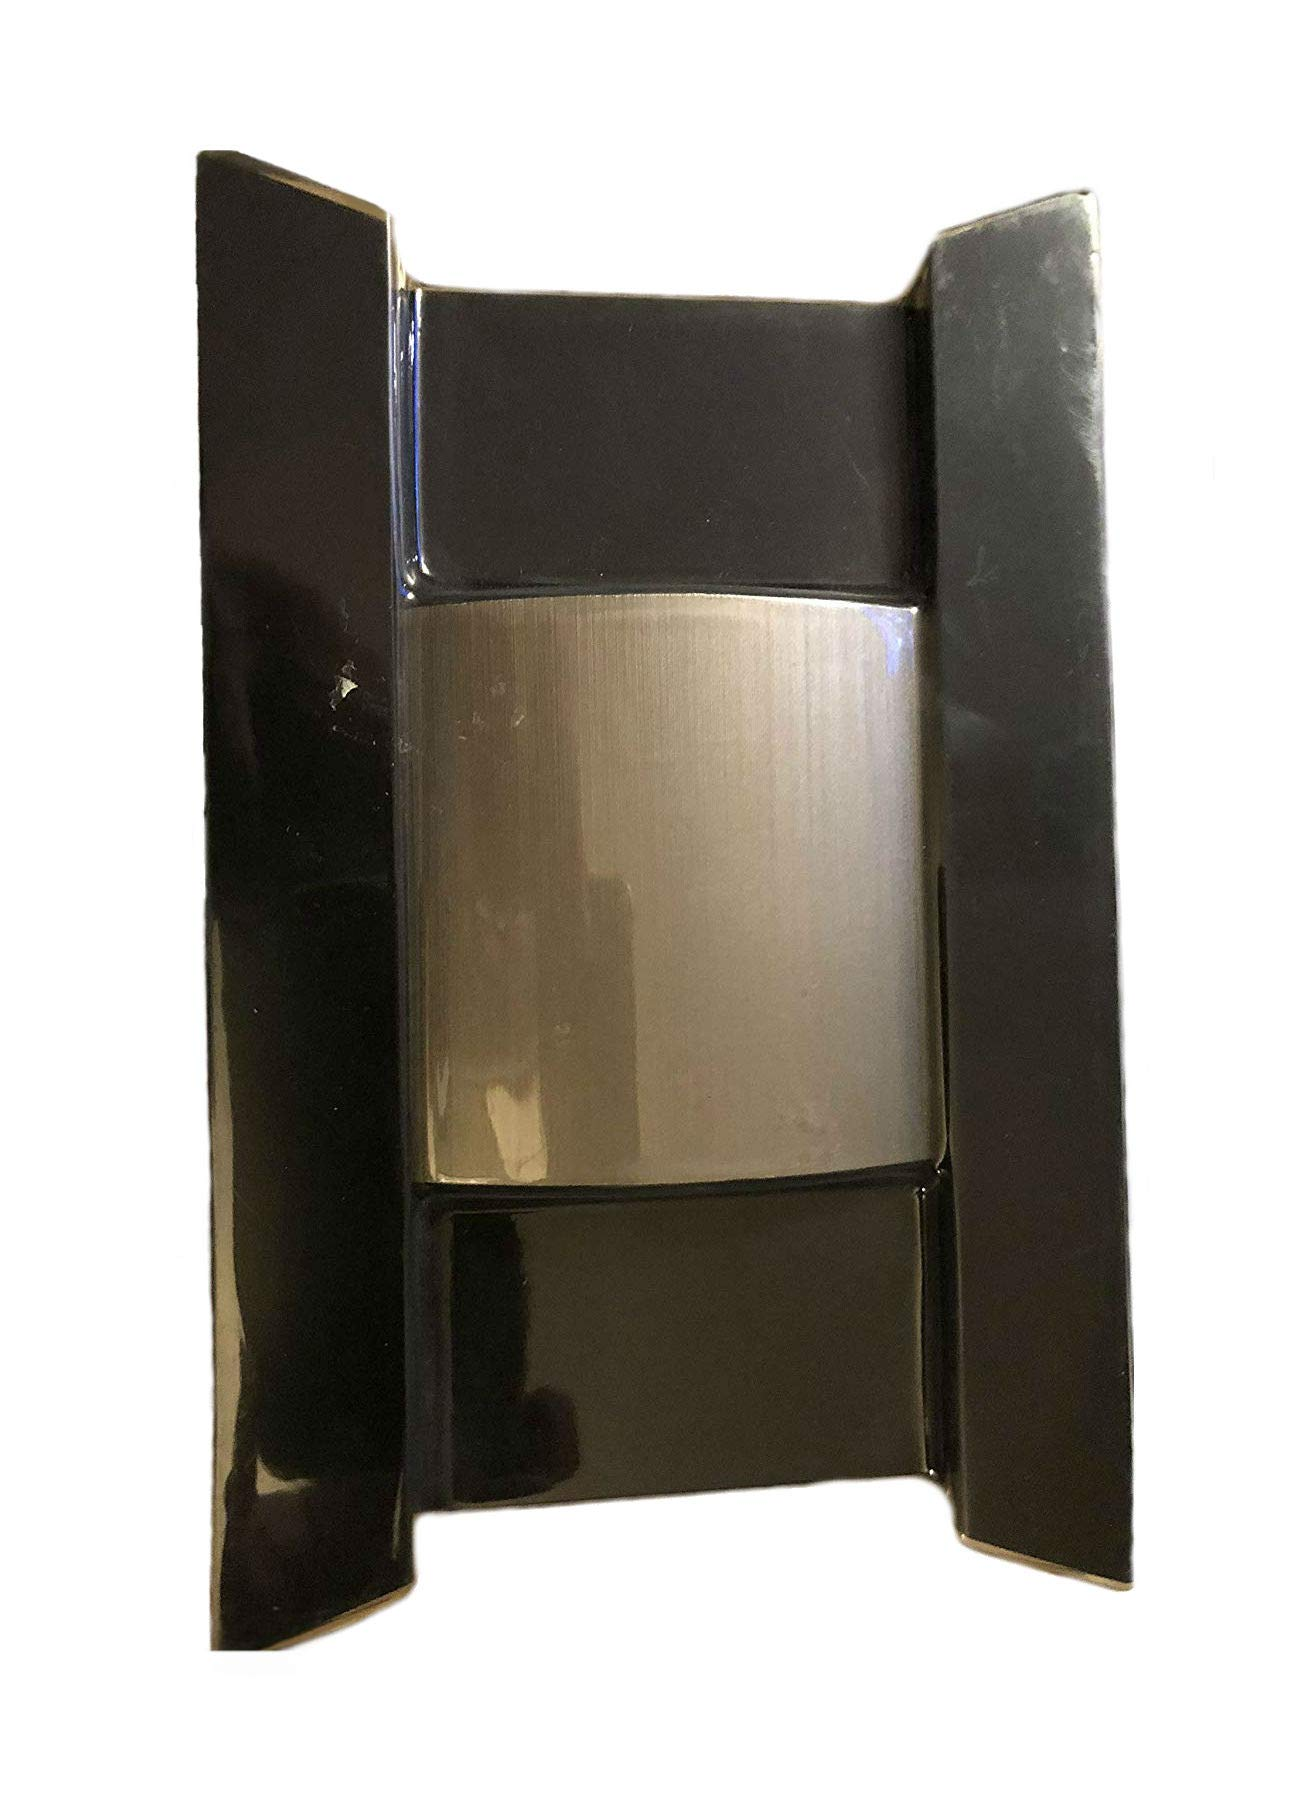 Wireless or Wired Door Bell, Black with Brushed Nickel Accent